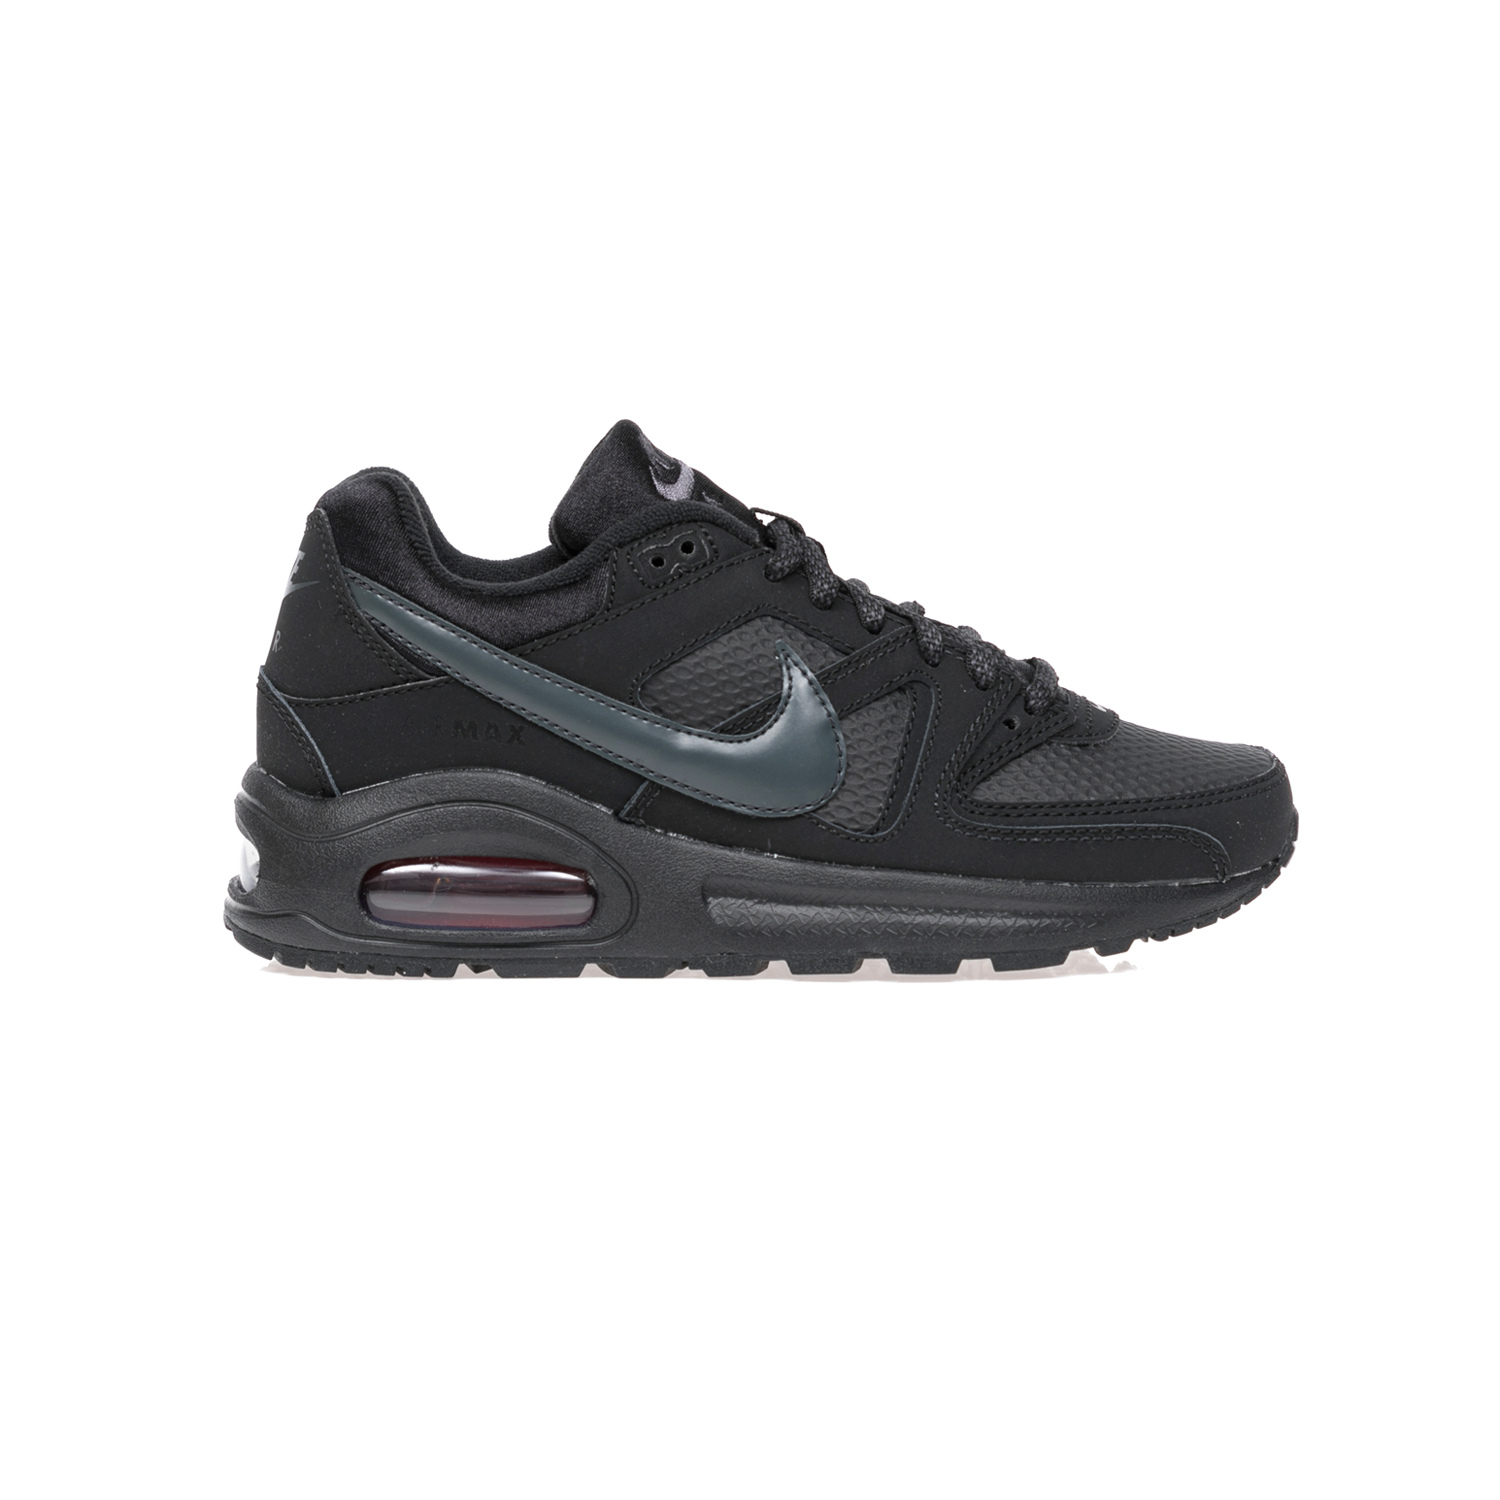 b511494324bc NIKE - Παιδικά παπούτσια NIKE AIR MAX COMMAND PRM GS μαύρα